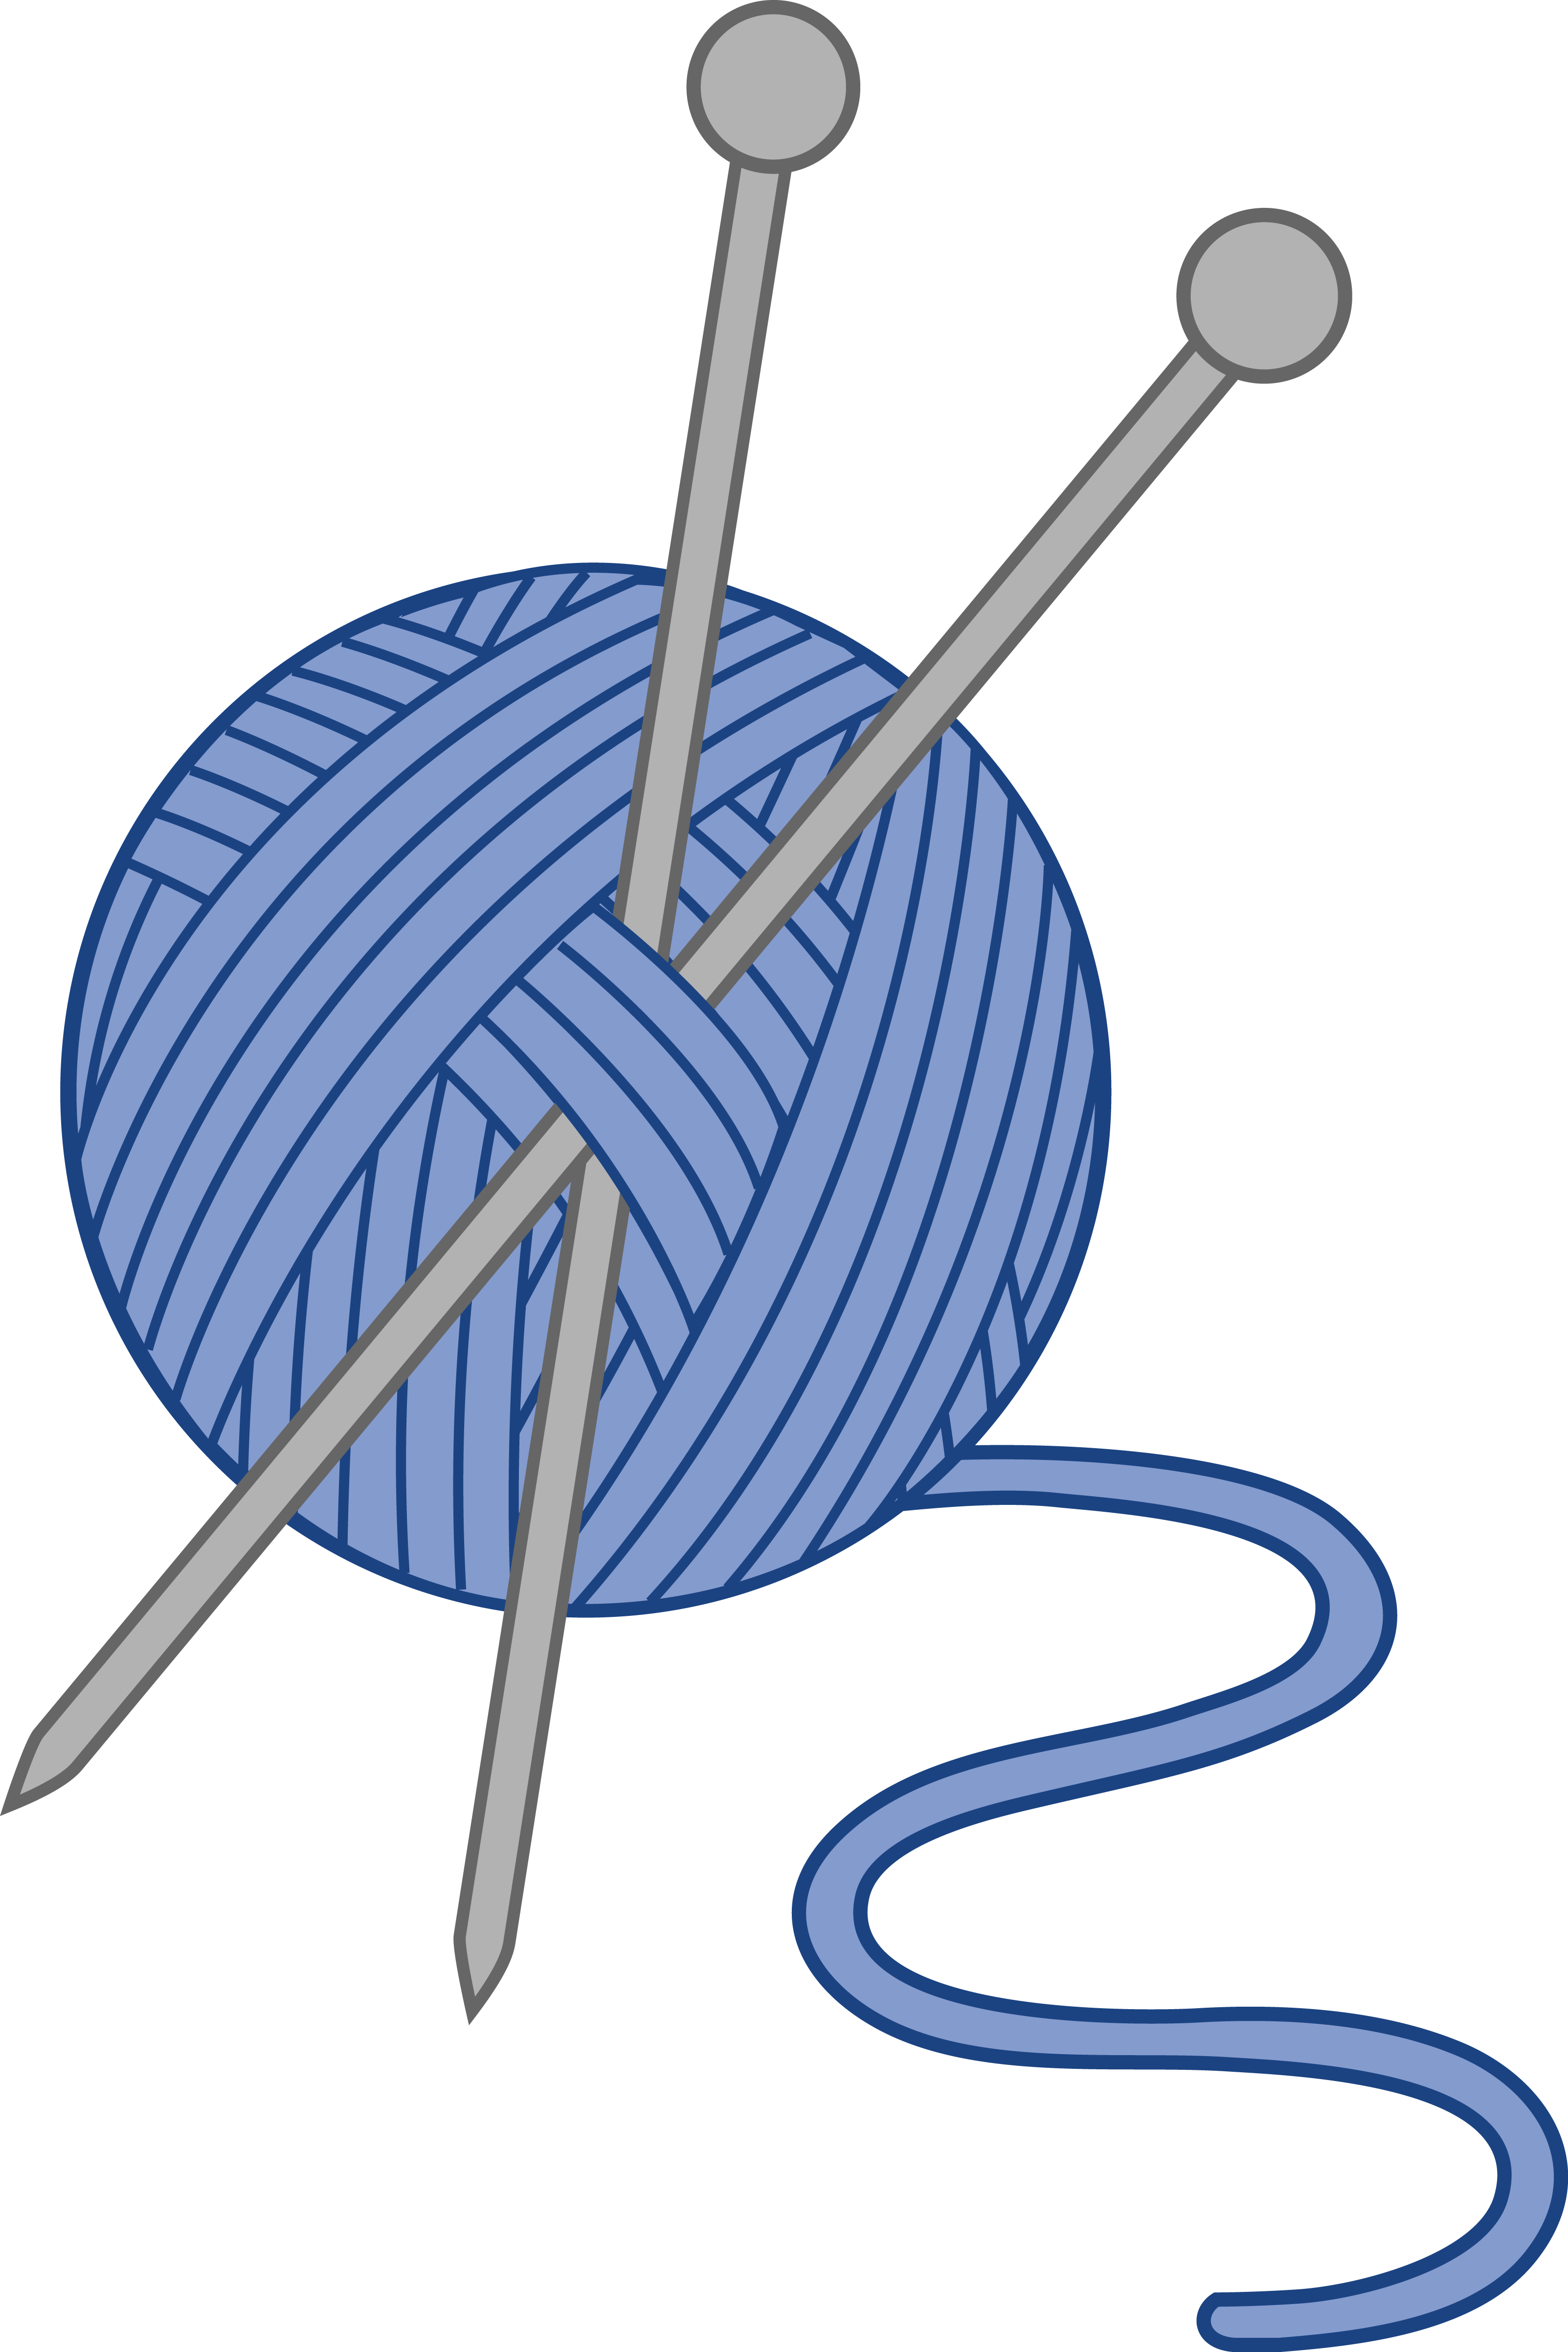 Free clipart knitting needles. Blue yarn and clip